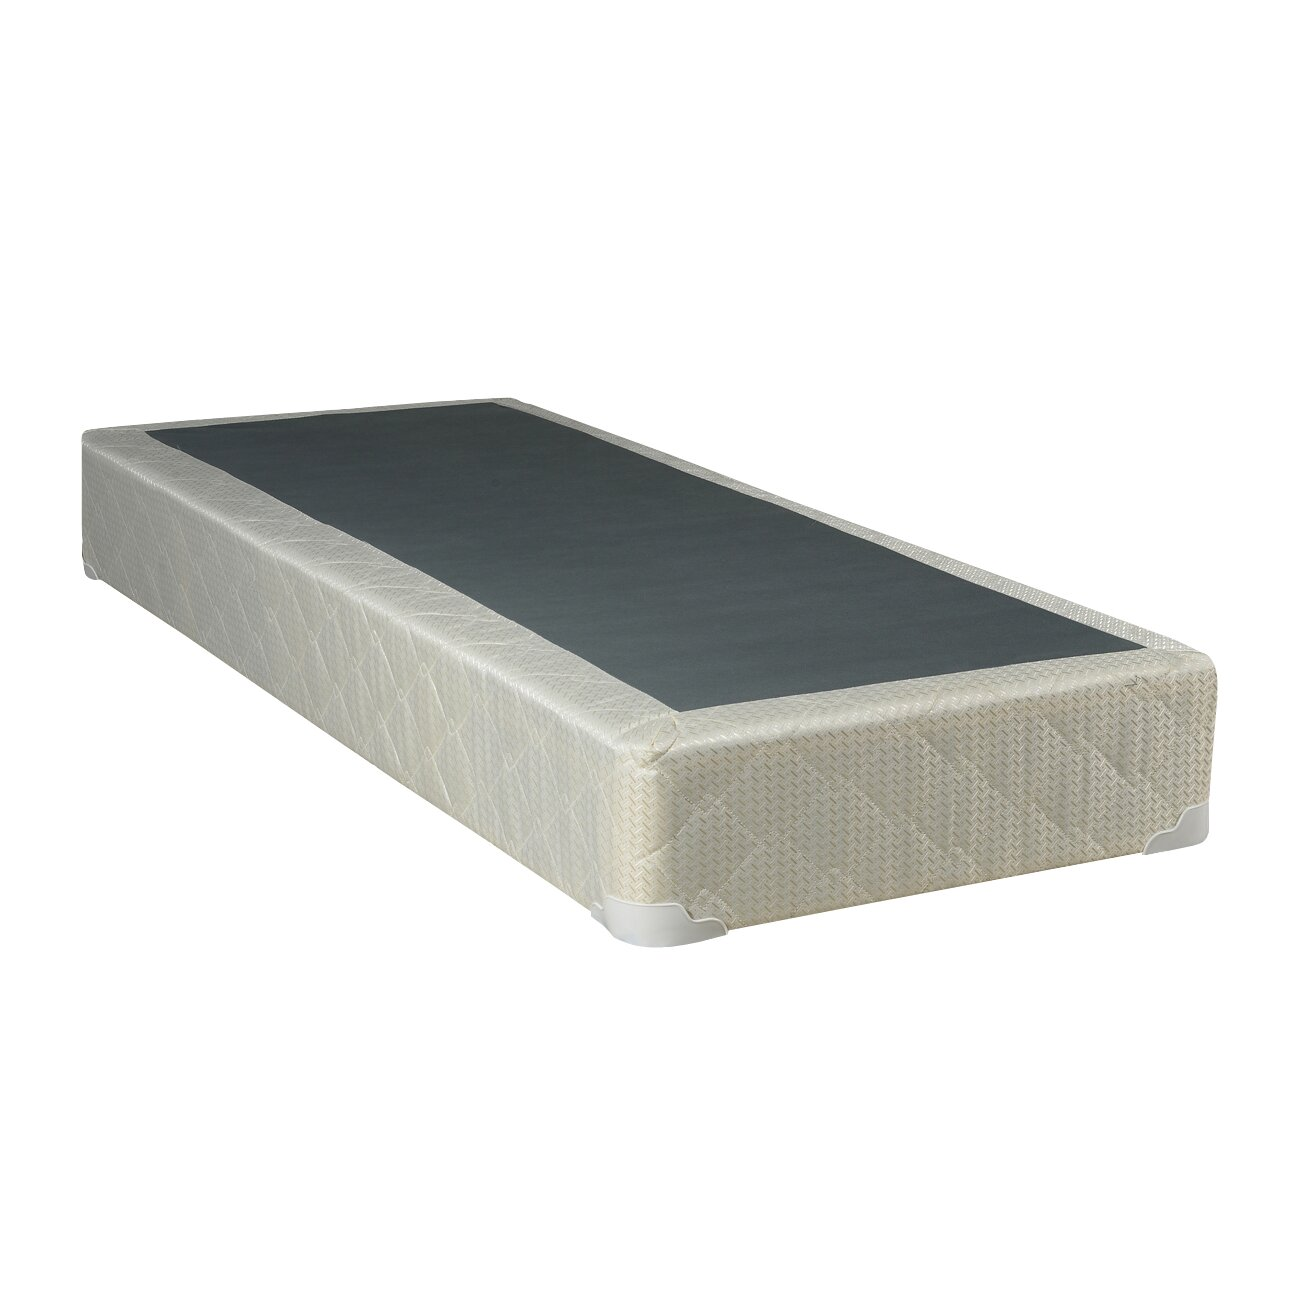 Wayfair Furniture Mattress